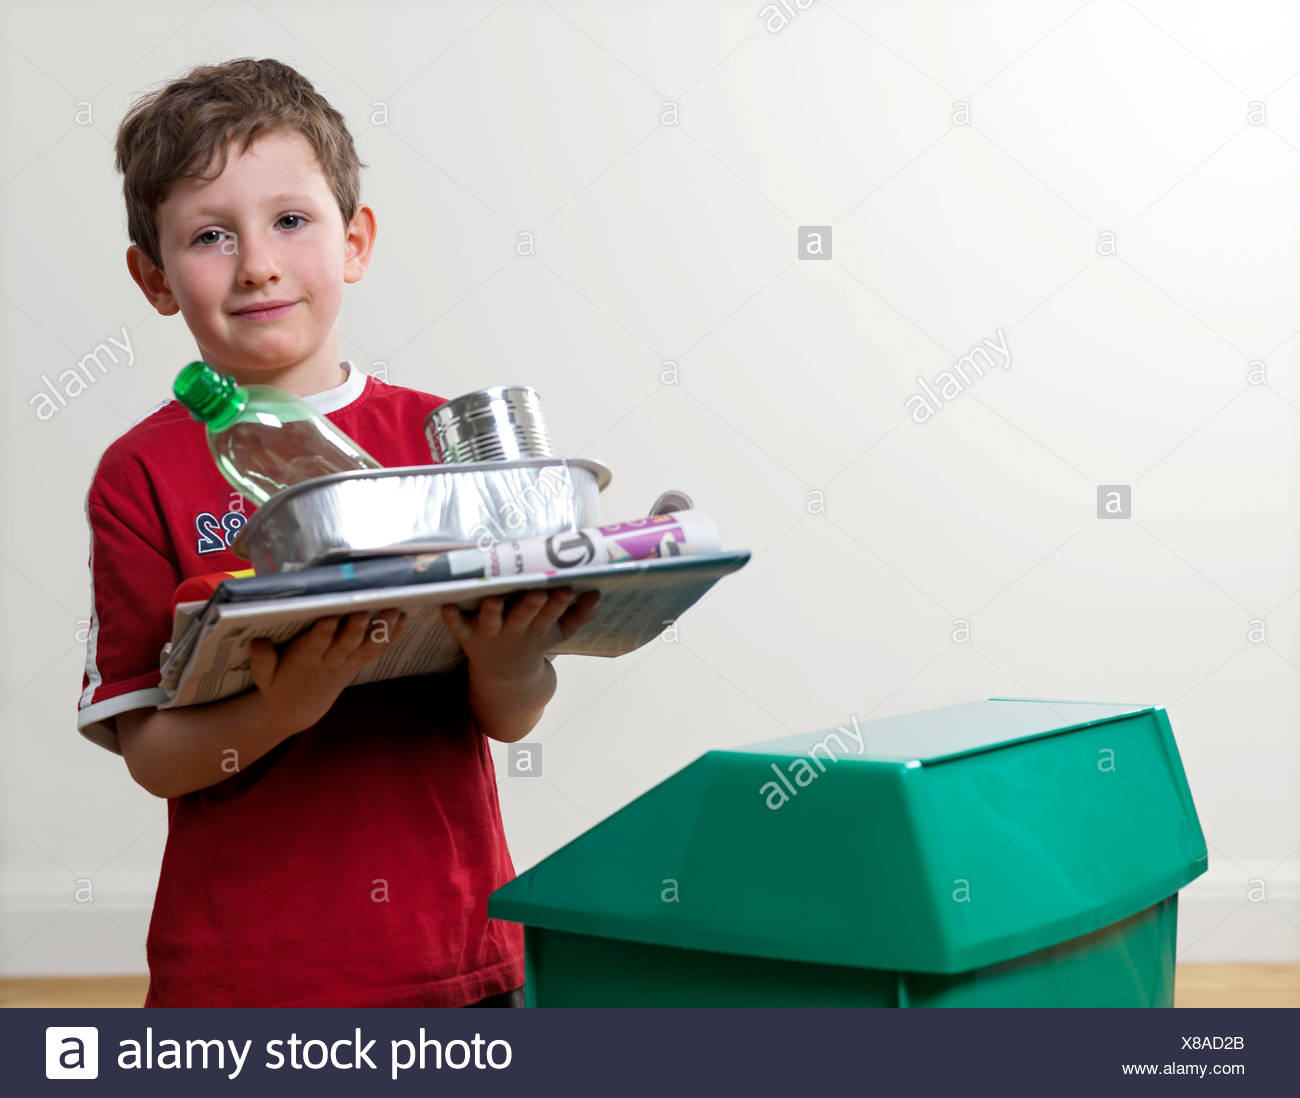 Recyclable household waste - Stock Image